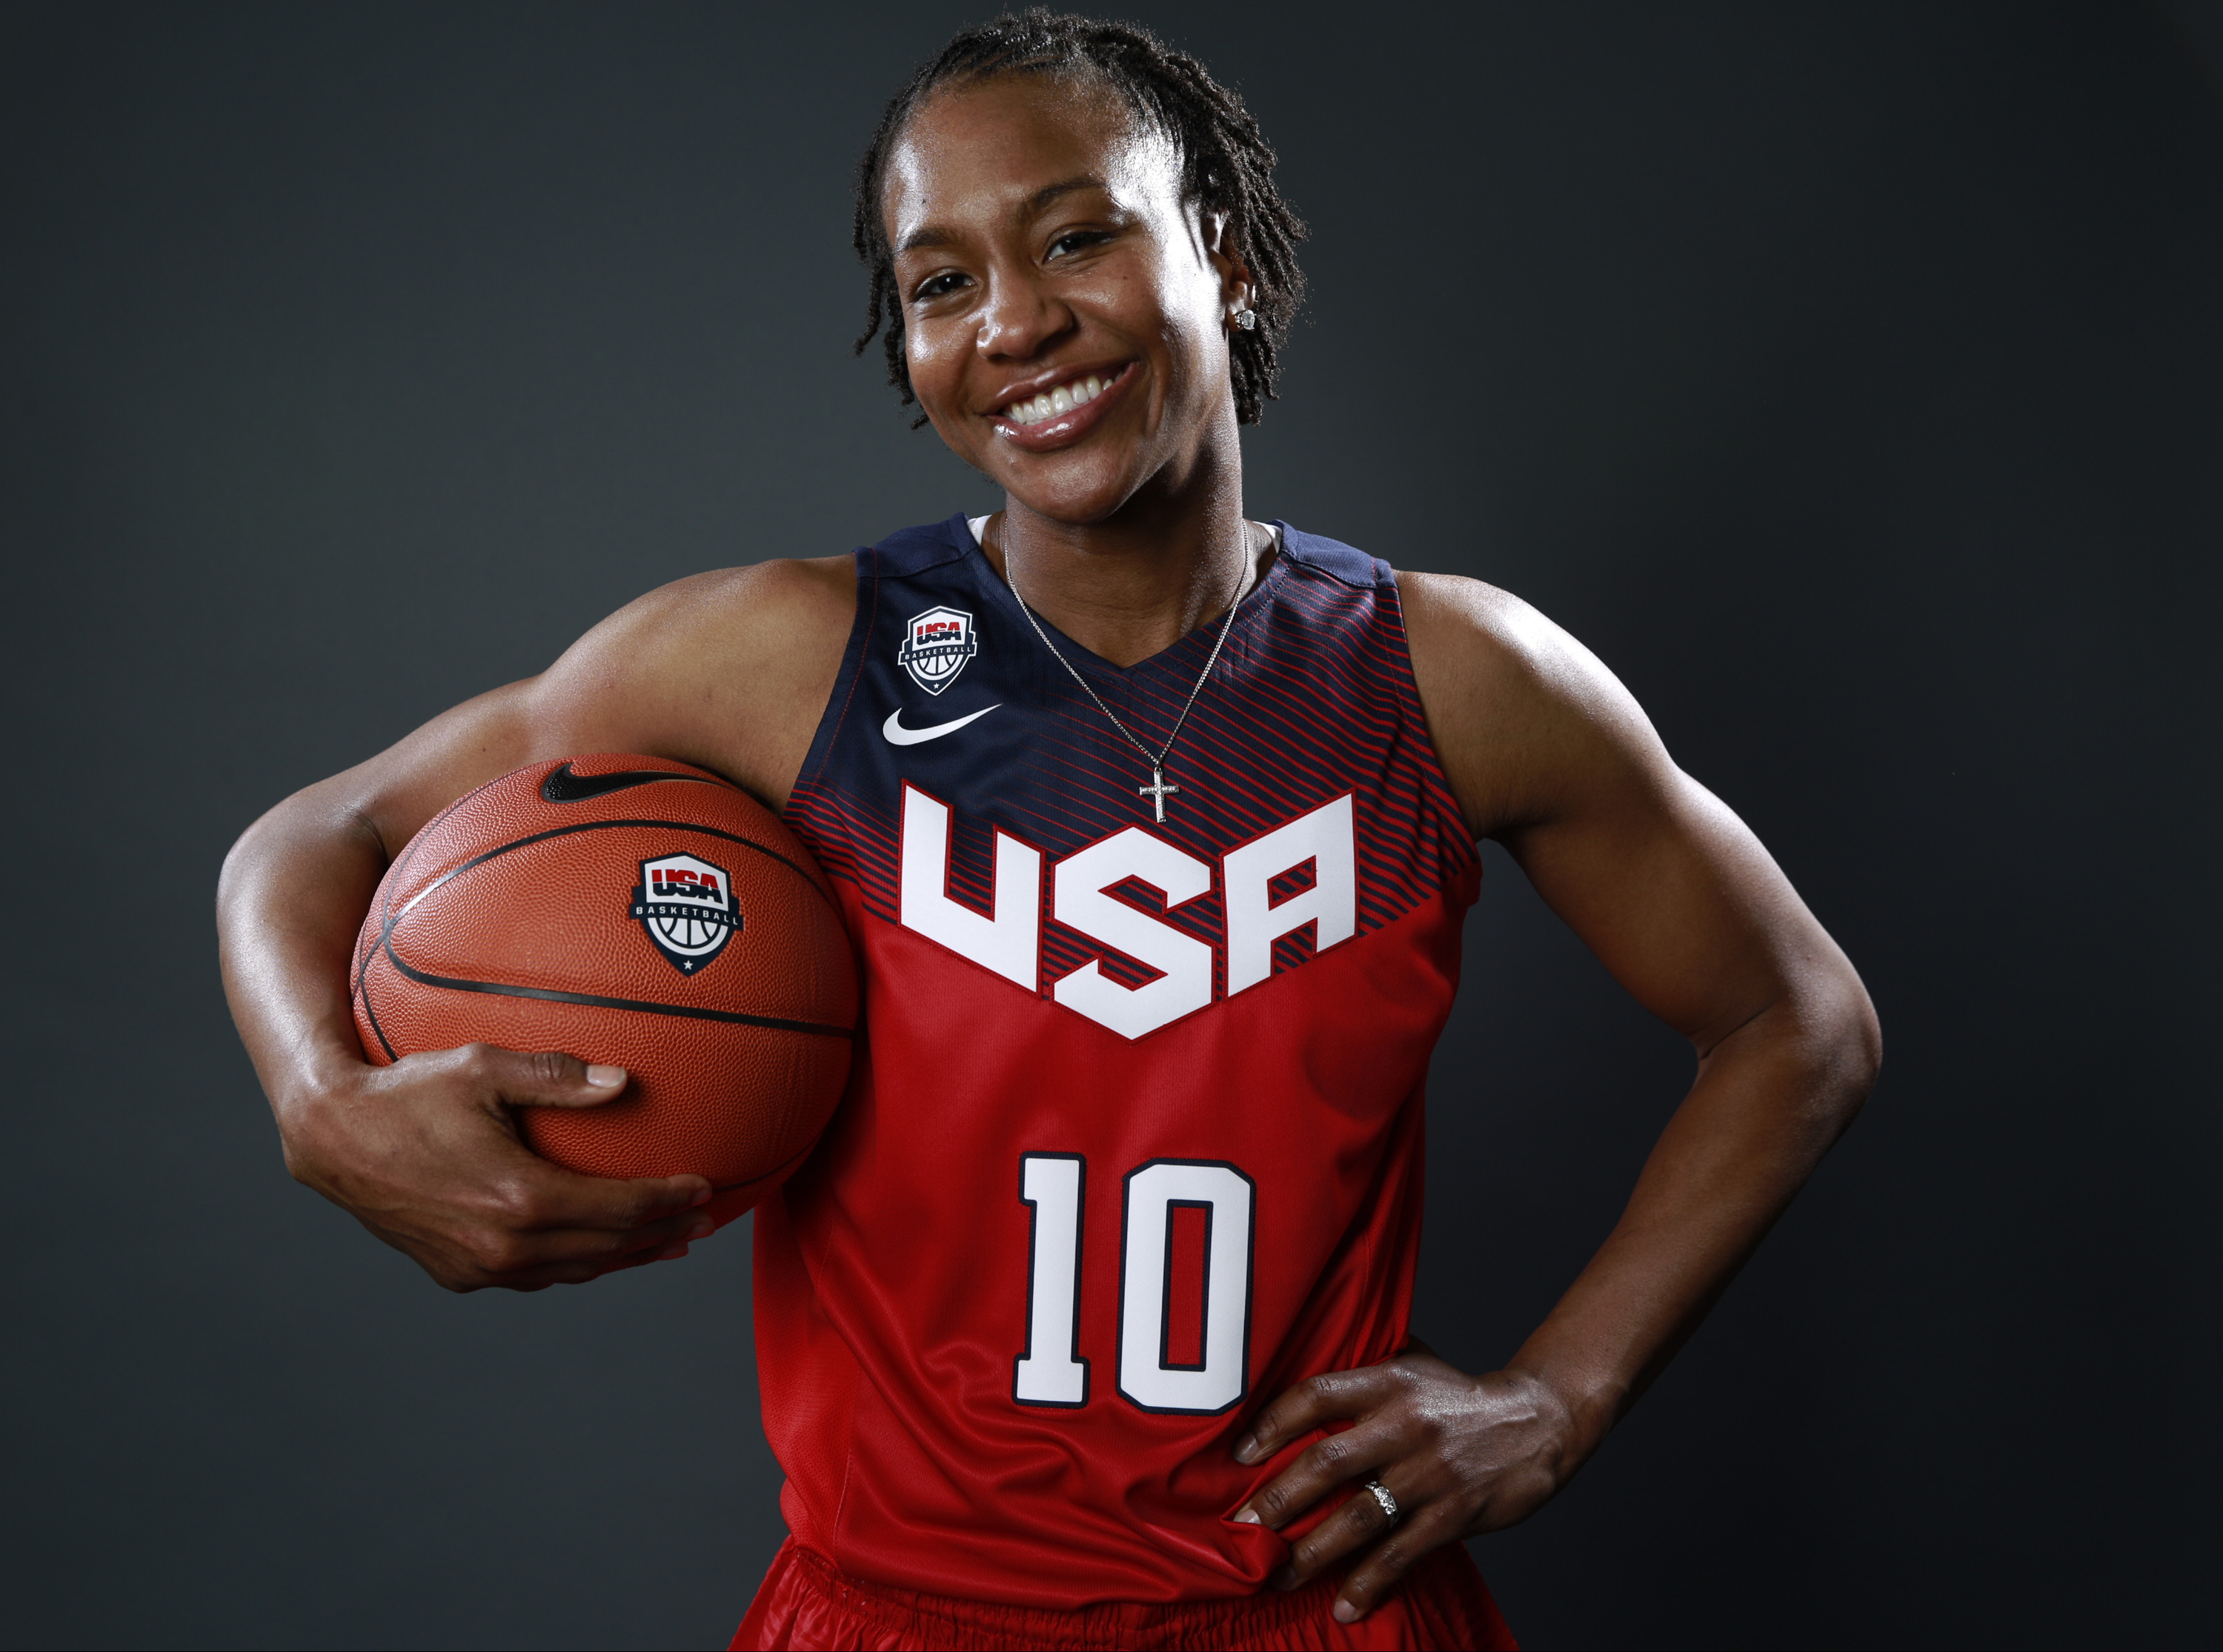 The award for the top women's college basketball player will be named after Tamika Catchings.